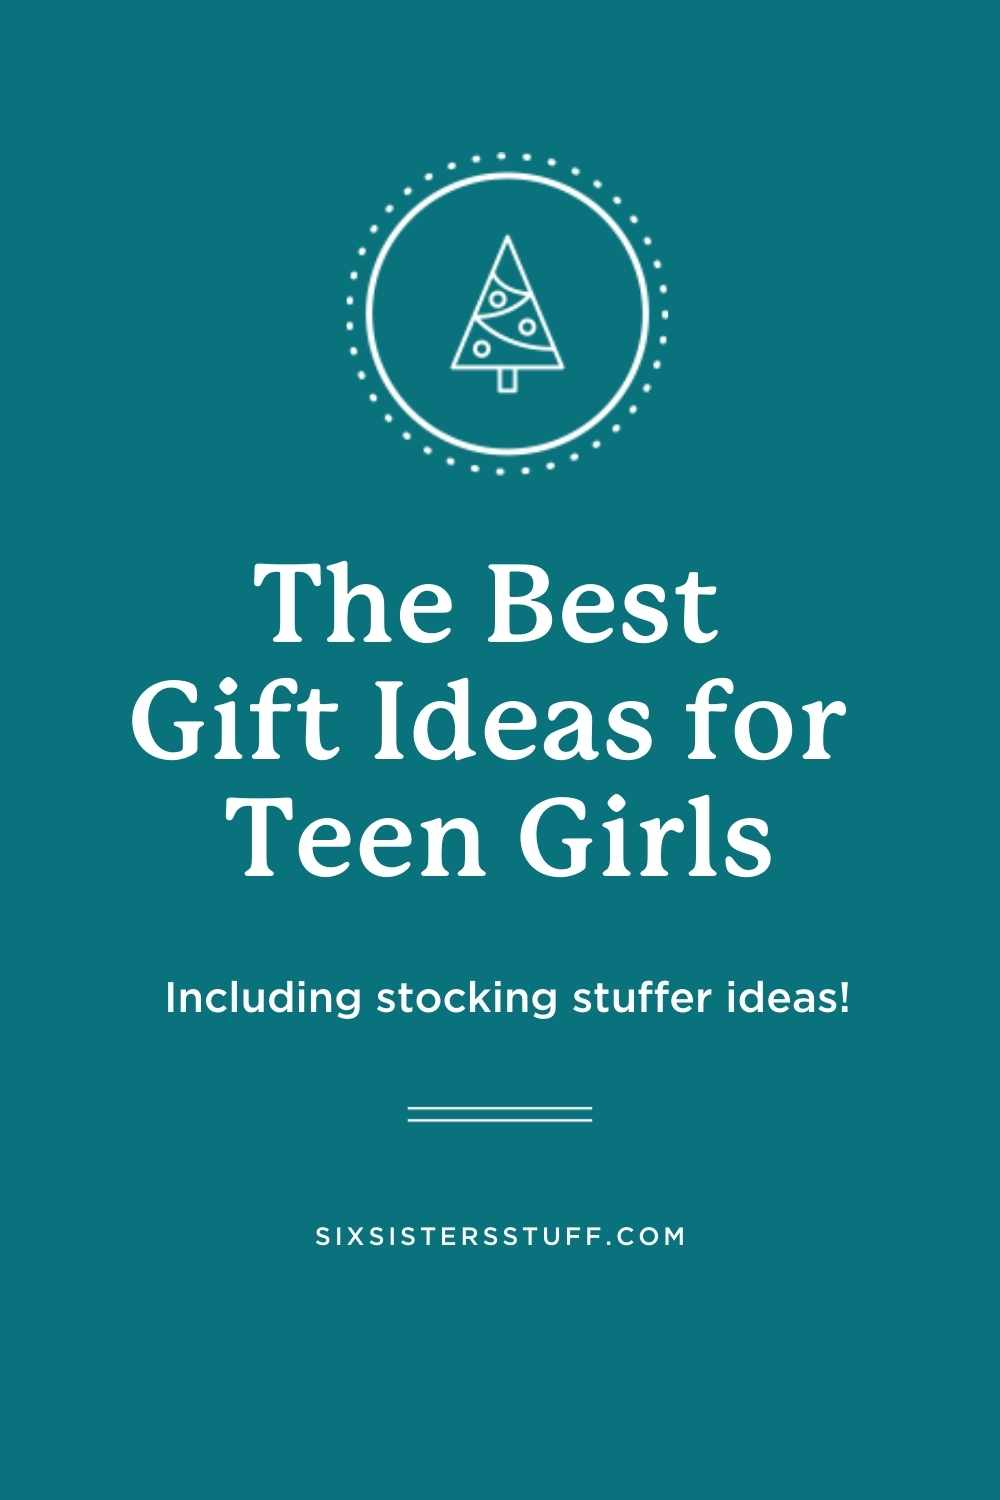 The Best Gifts for Teen Girls (Plus Stocking Stuffers)